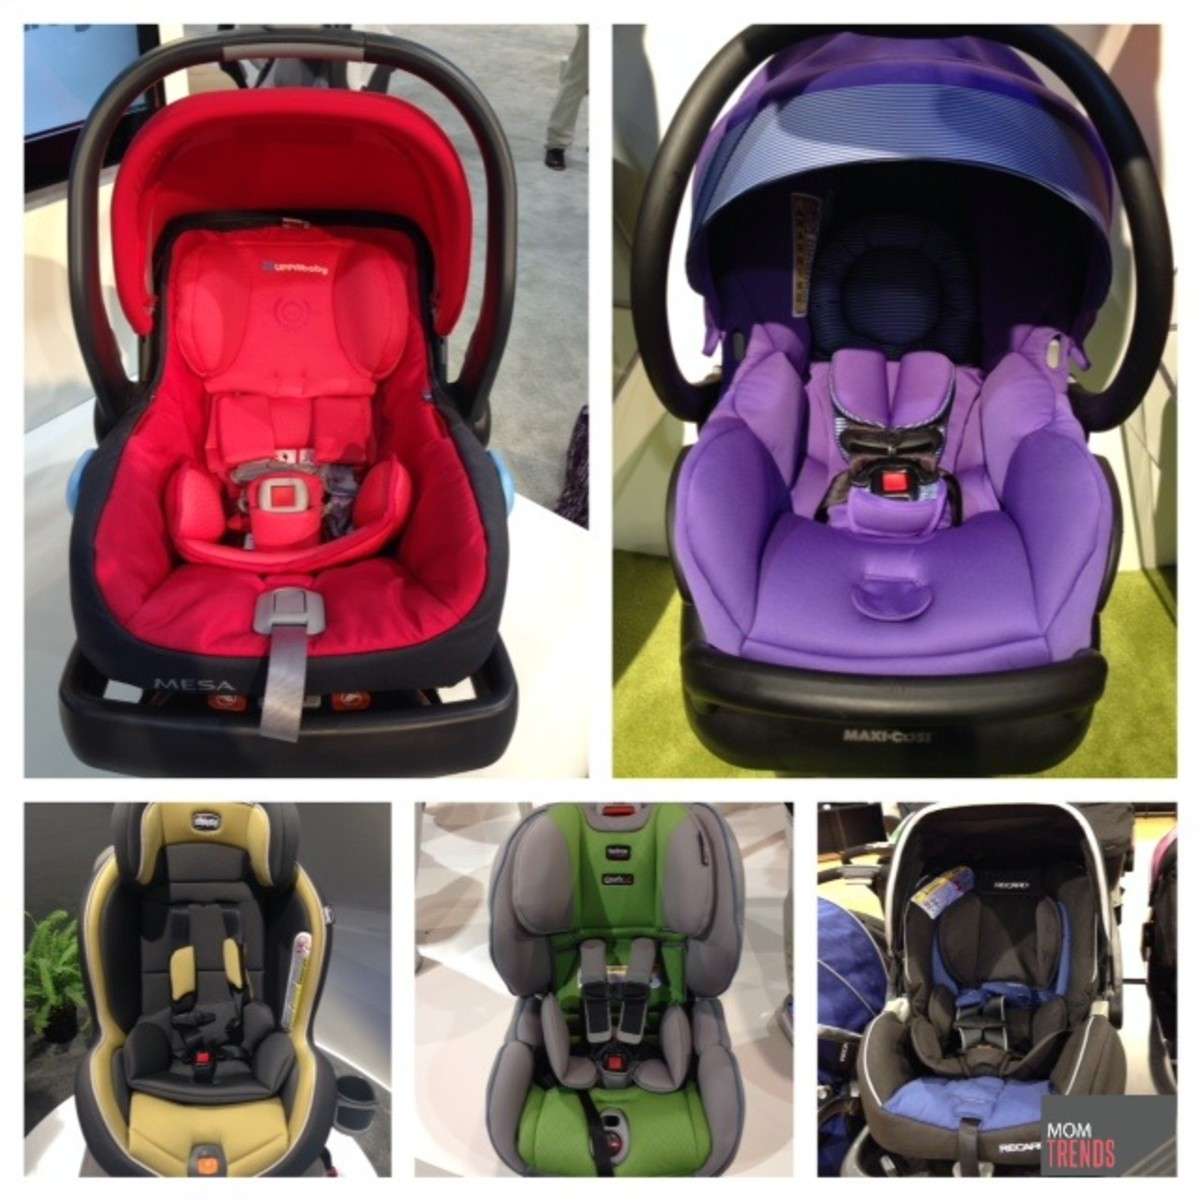 ABC Trends - solid car seats